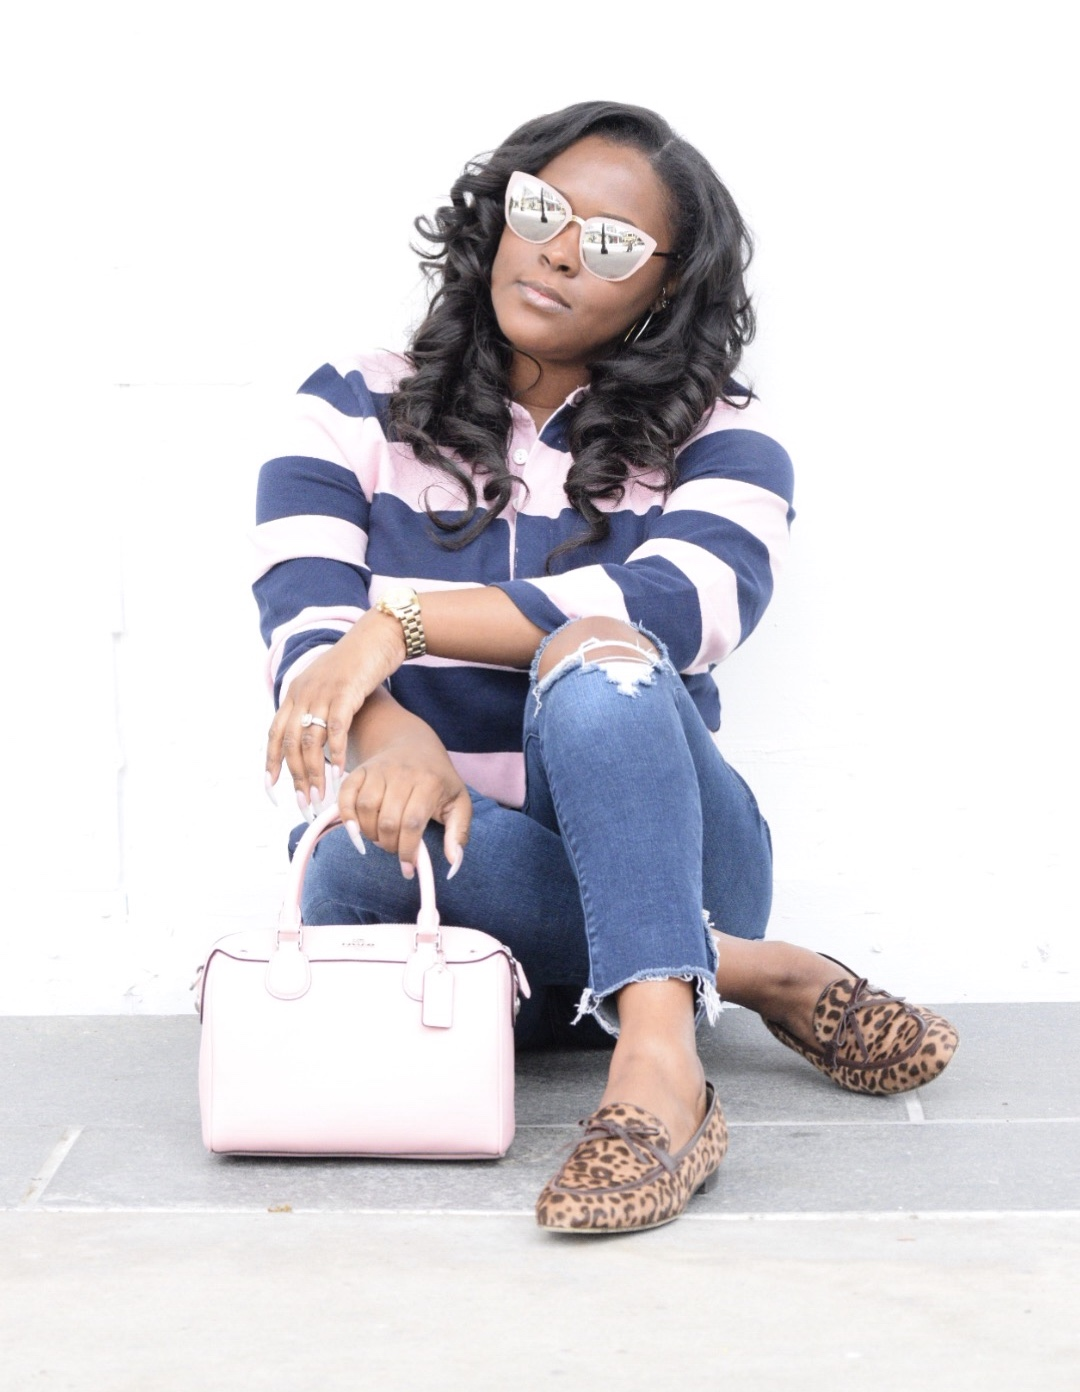 J Crew  Shirt  &  Loafers , Abercrombie  Jeans , Coach  Bag , Nordstrom Sunnies (similar  here )